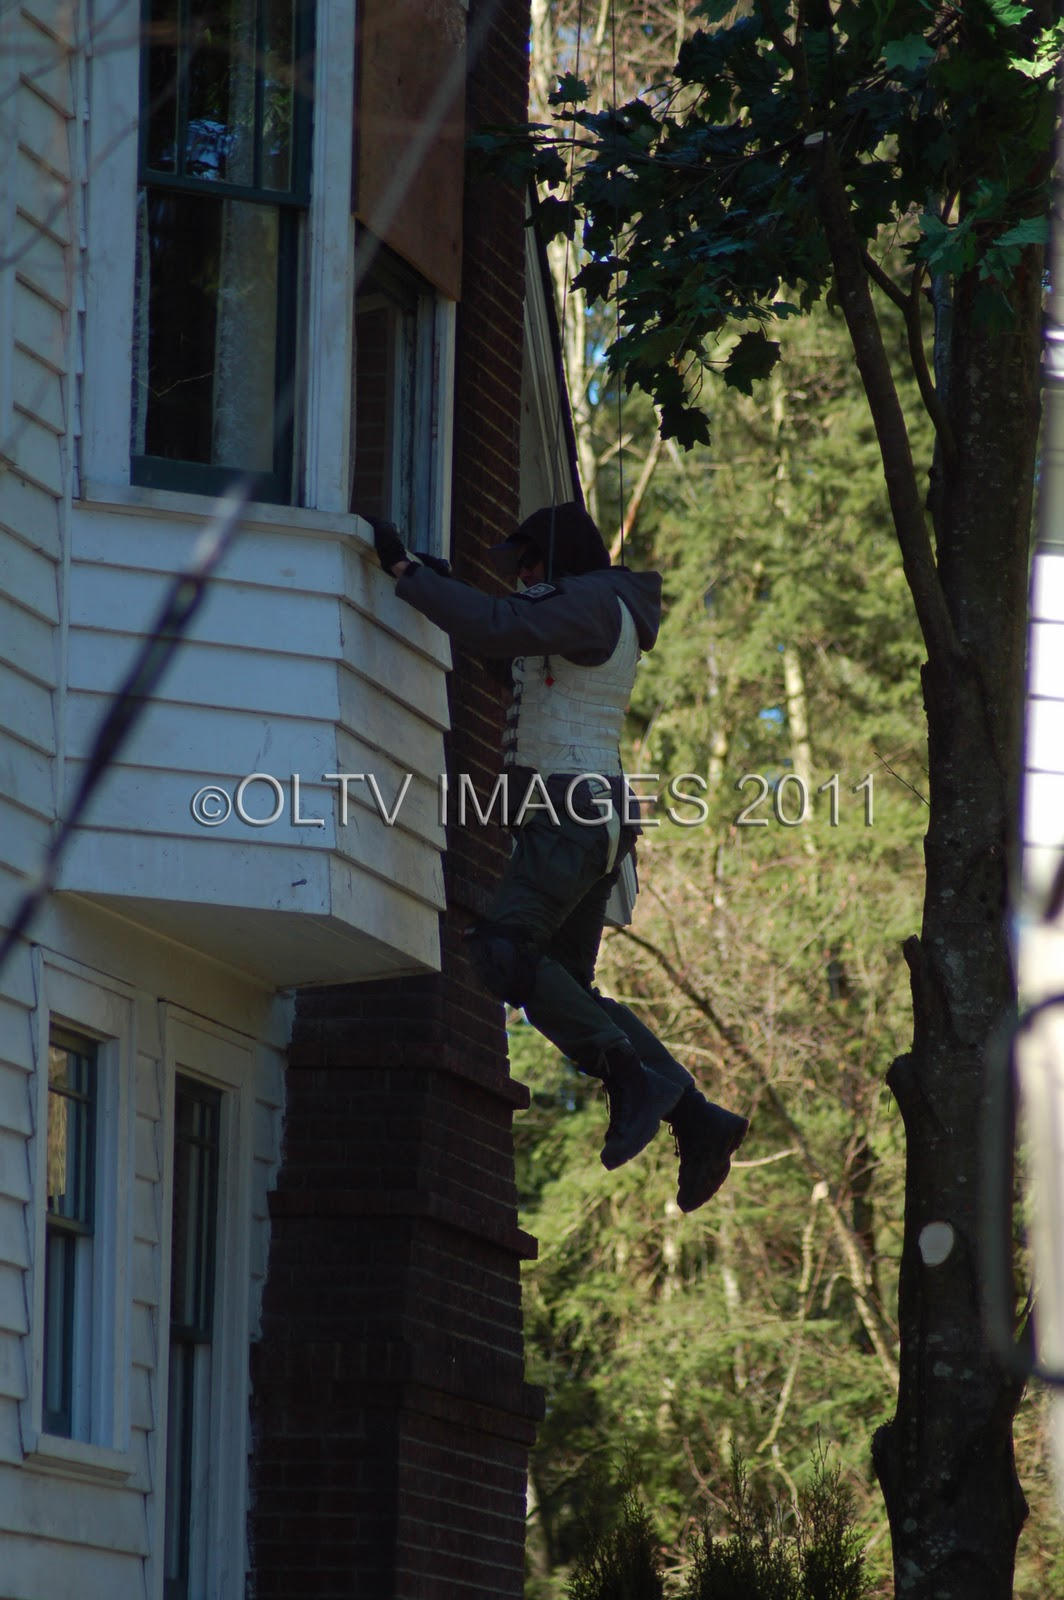 Stunt Gear Being Tested At The Bella S House Location Twilight Lexicon